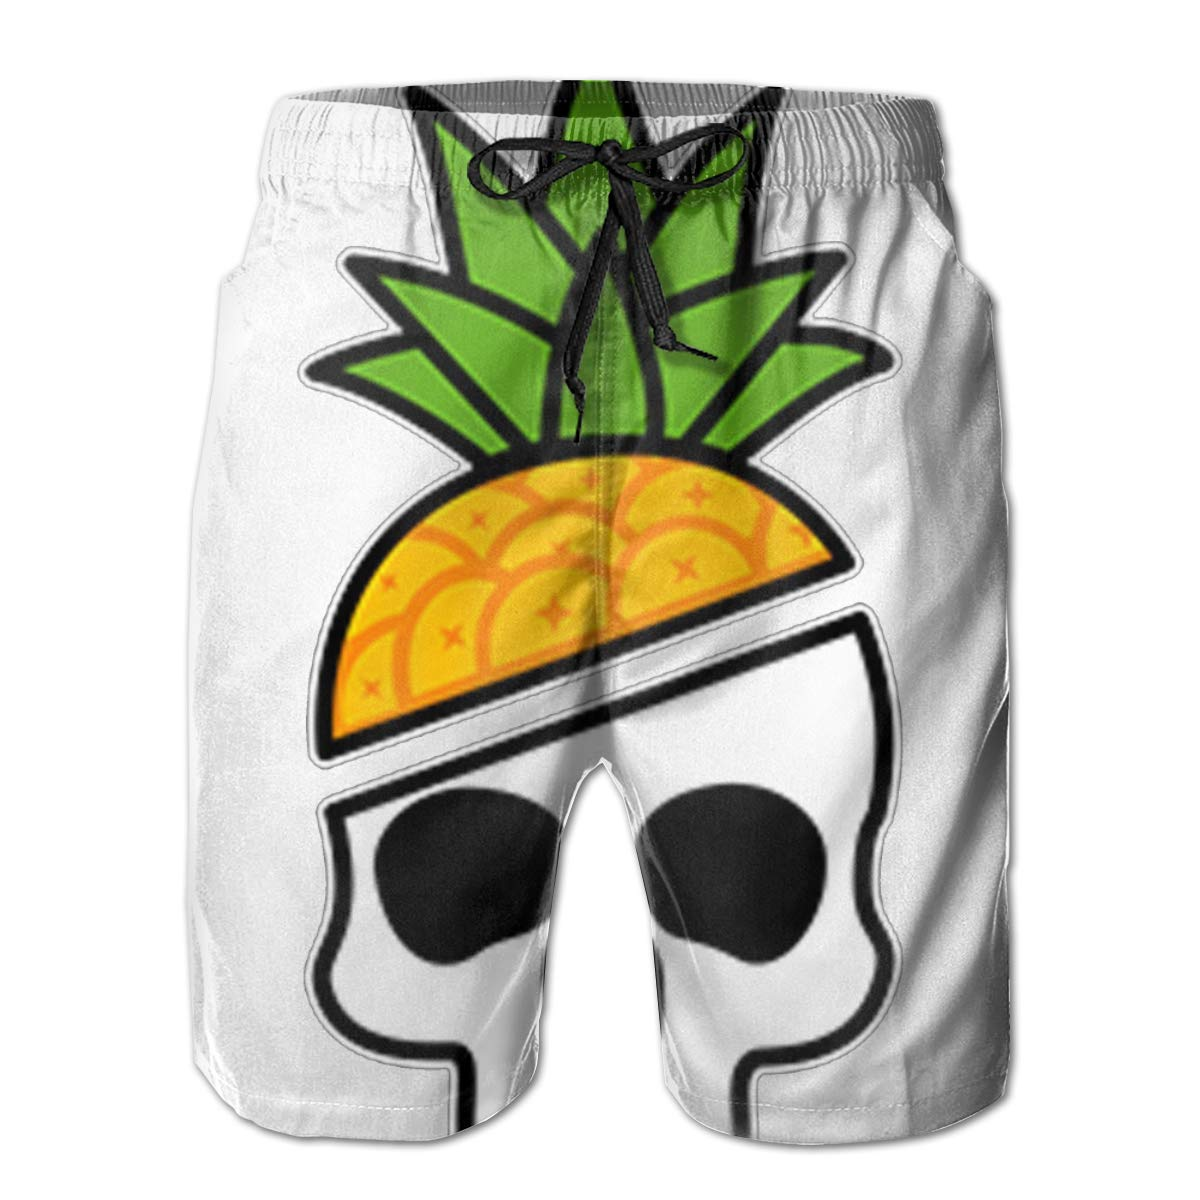 Reality And Ideals Pineapple Skull Mens Swim Trunks Board Shorts